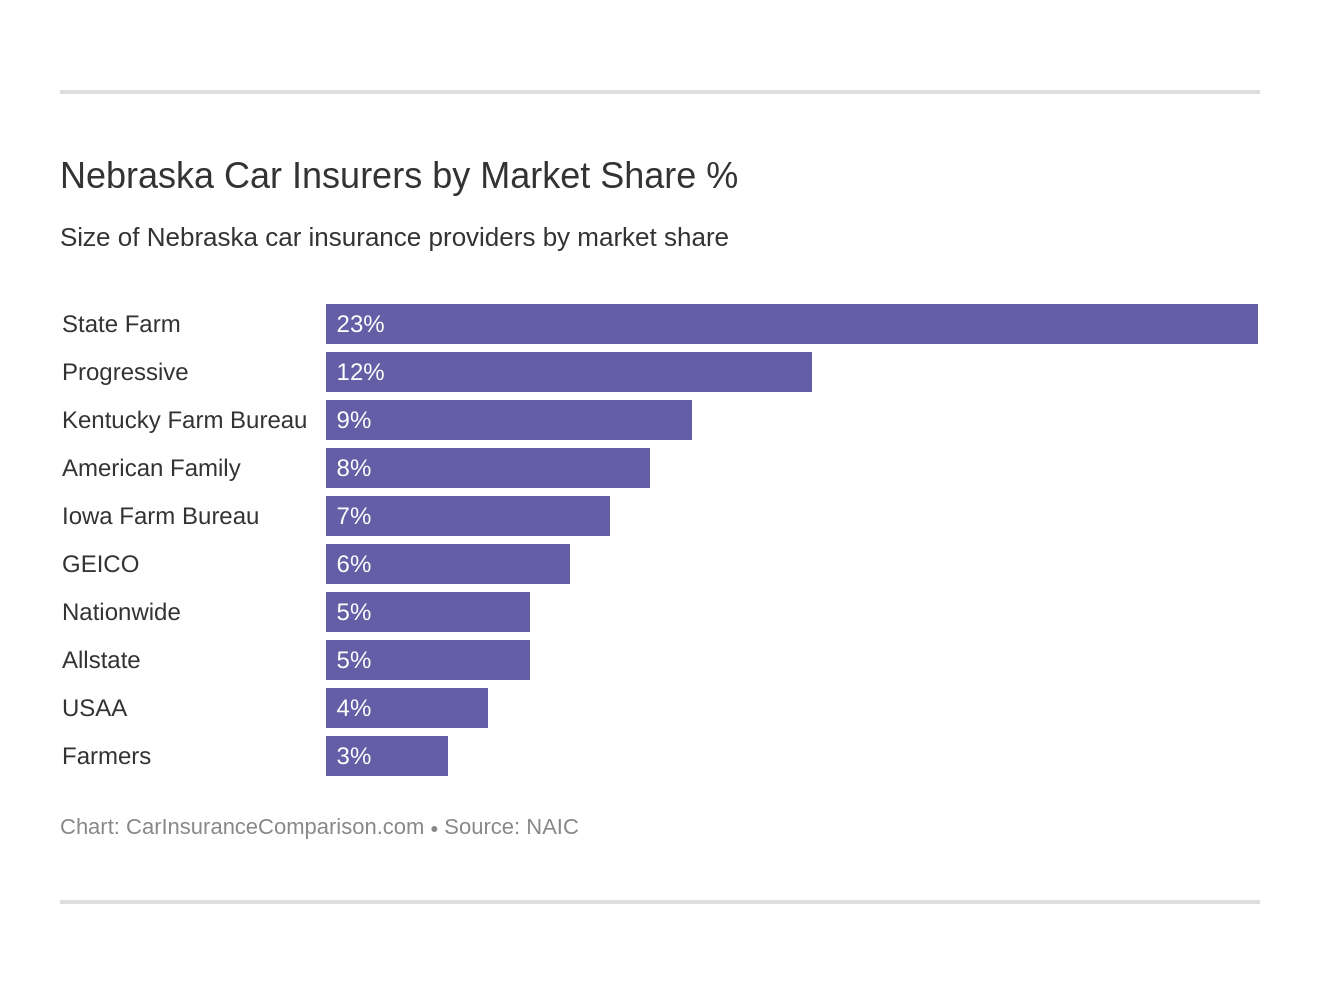 Nebraska Car Insurers by Market Share %